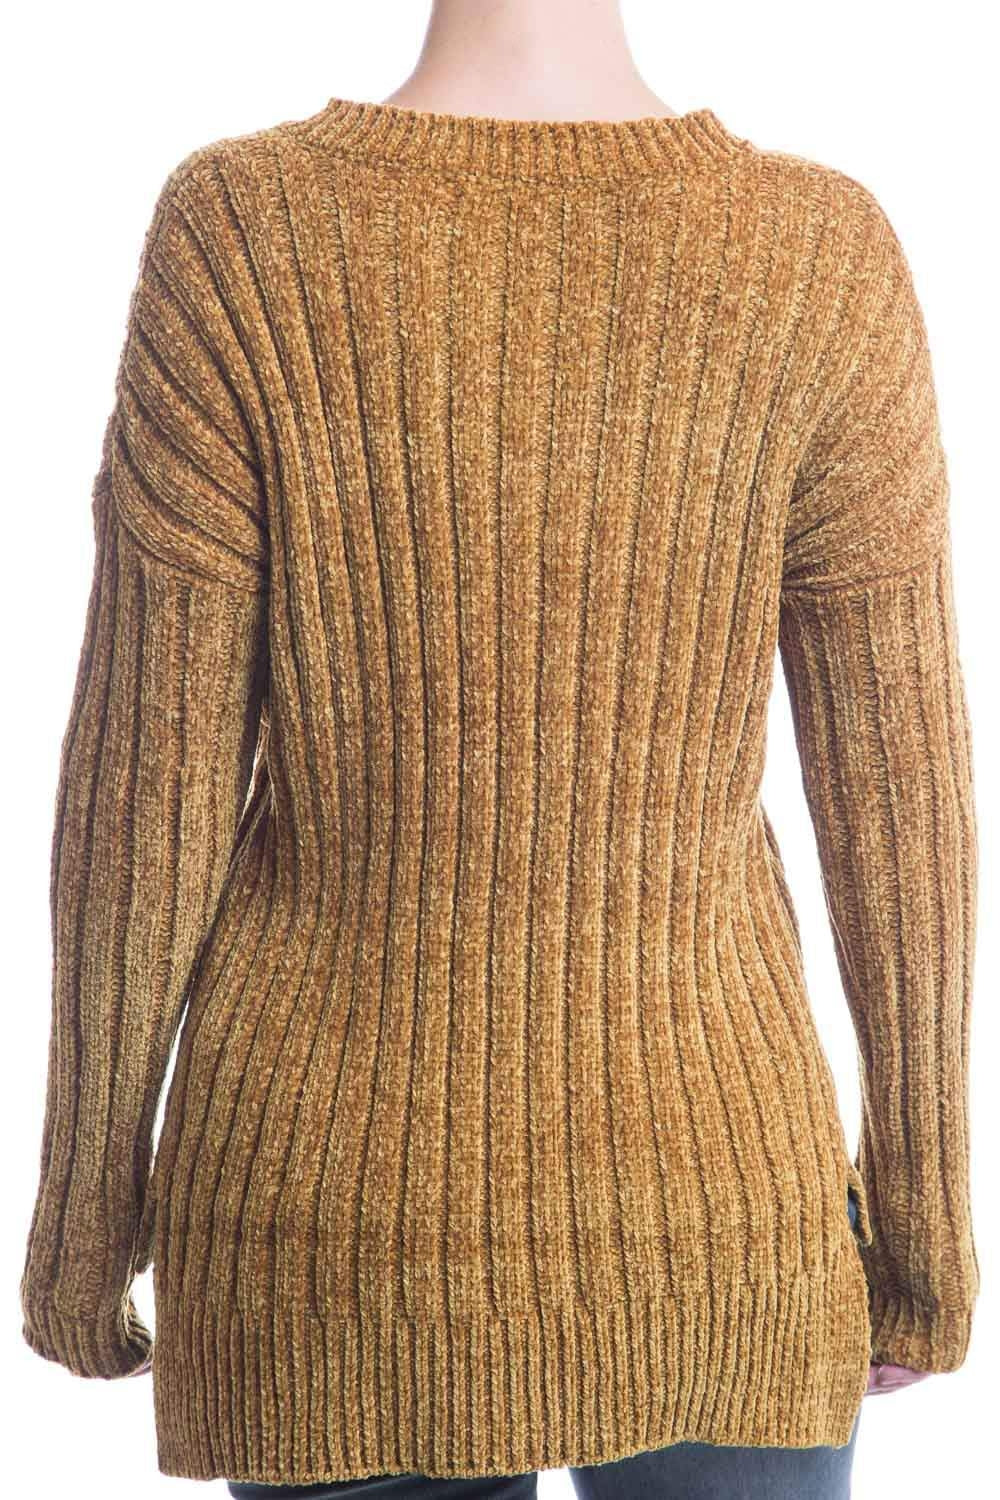 Type 3 Gold Rush Sweater